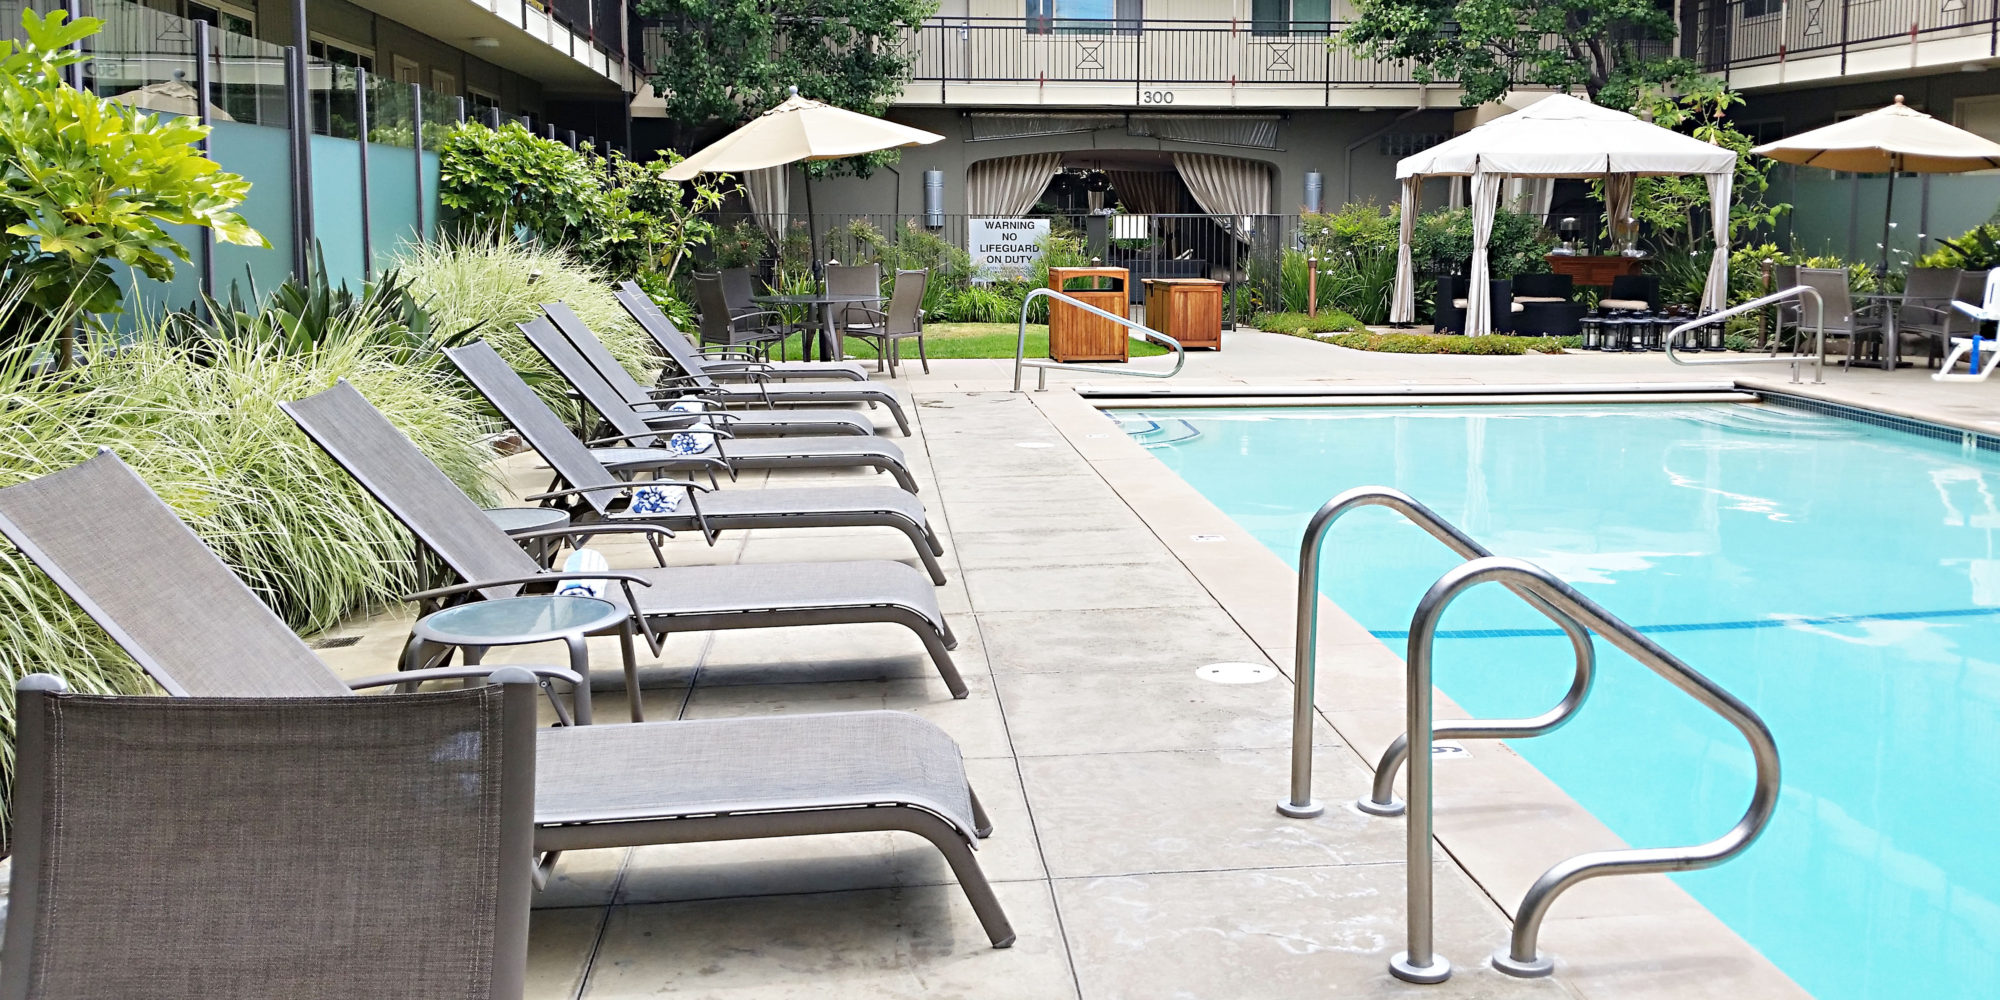 Chaises by the Pool